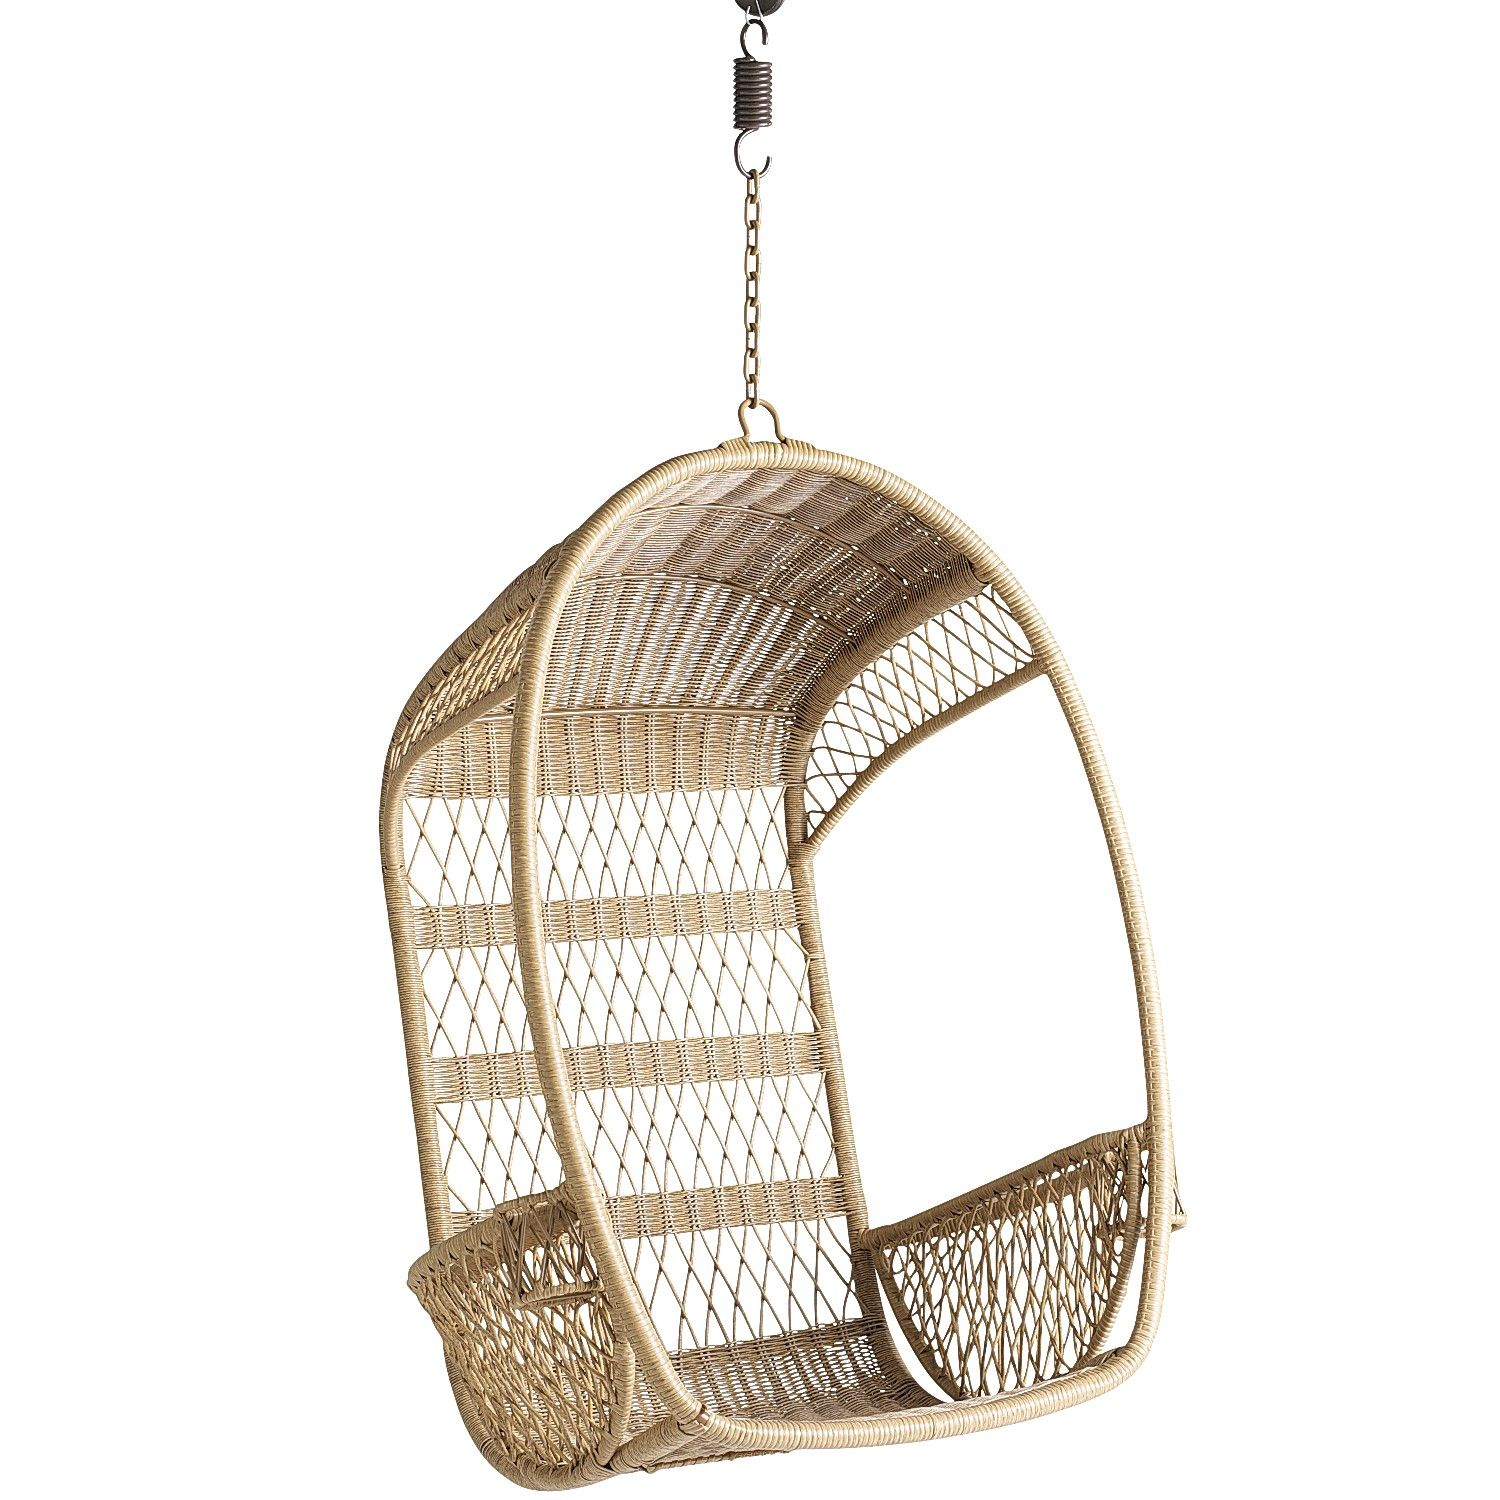 Pier 1 Swing Chair Swingasan Hanging Chair Ikea